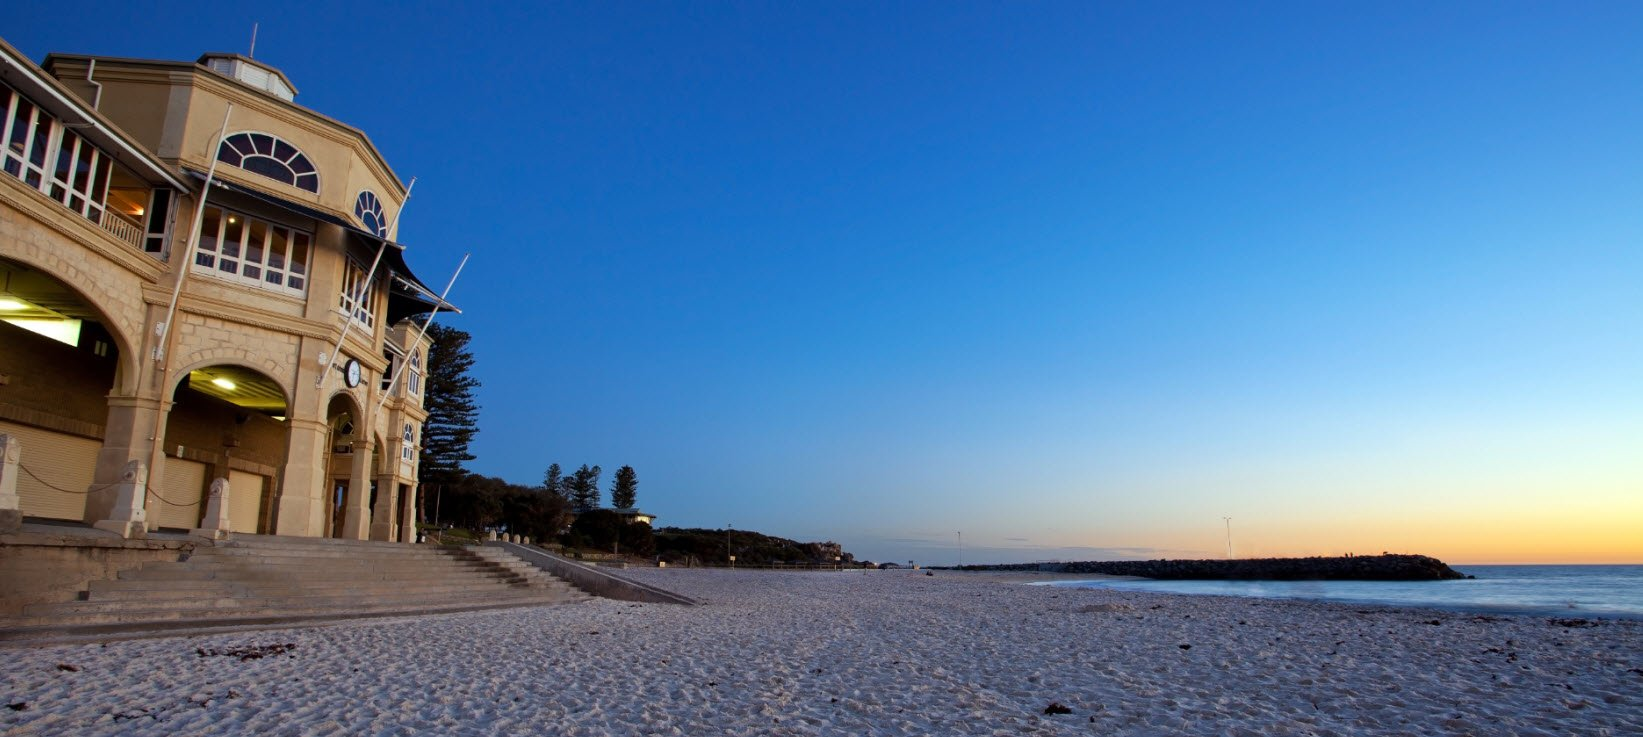 21 free things to do in Perth credit Shutterstock.jpg